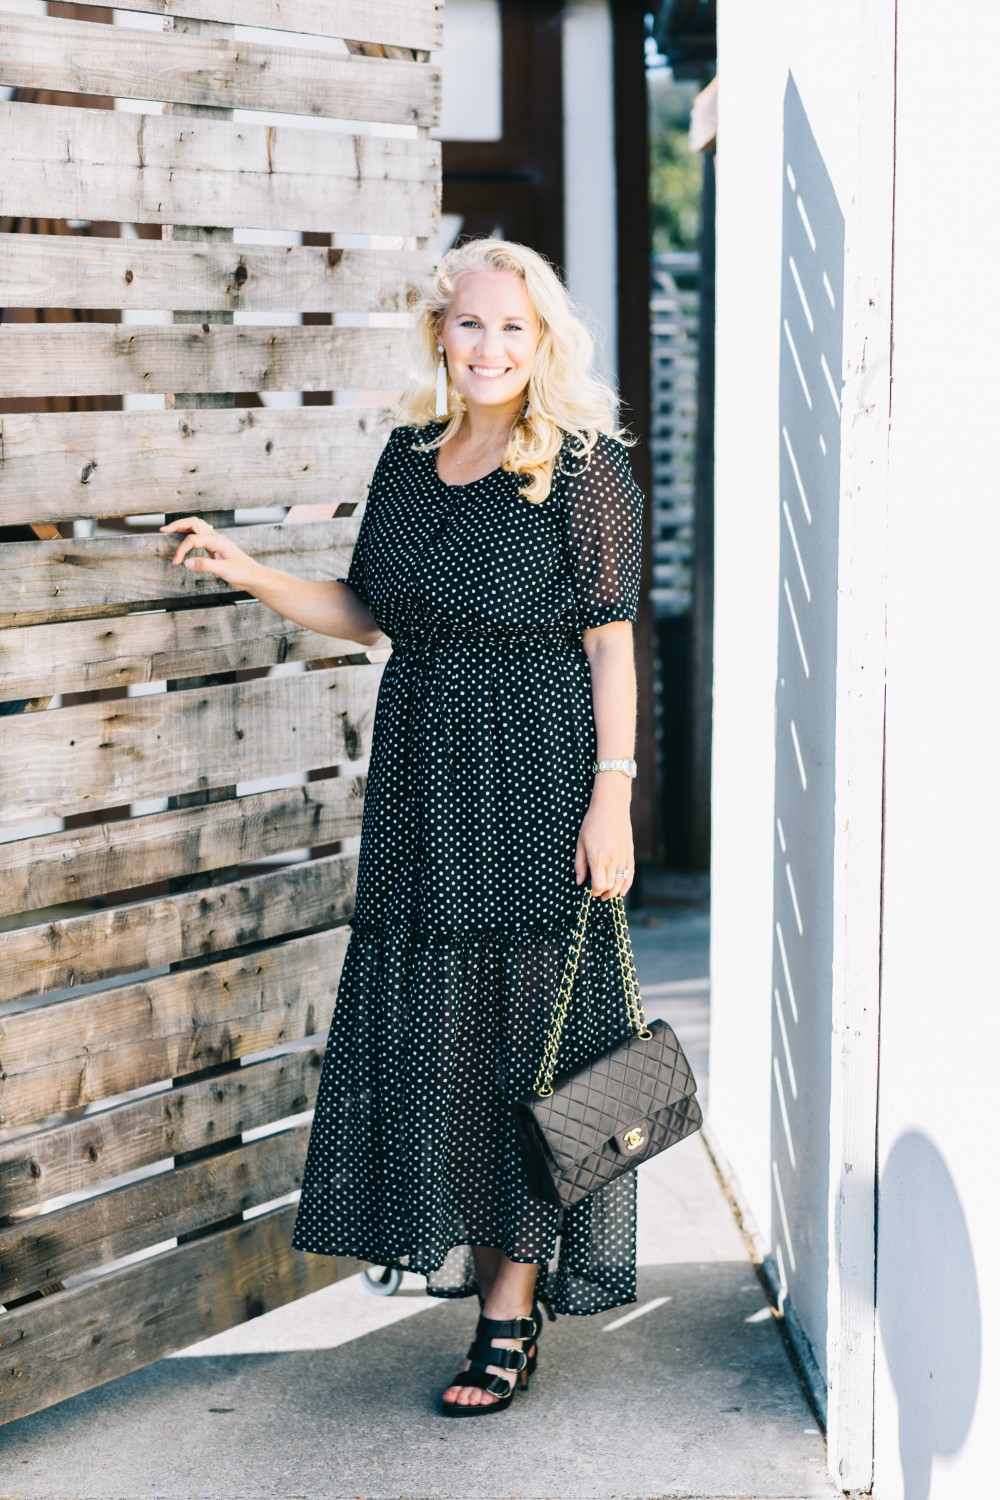 Black and White Polka Dot Maxi Dress-Who What Wear for Target-Target Maxi Dress-Polka Dot Dress-Outfit Inspiration-Bay Area Fashion Blogger-Have Need Want 7